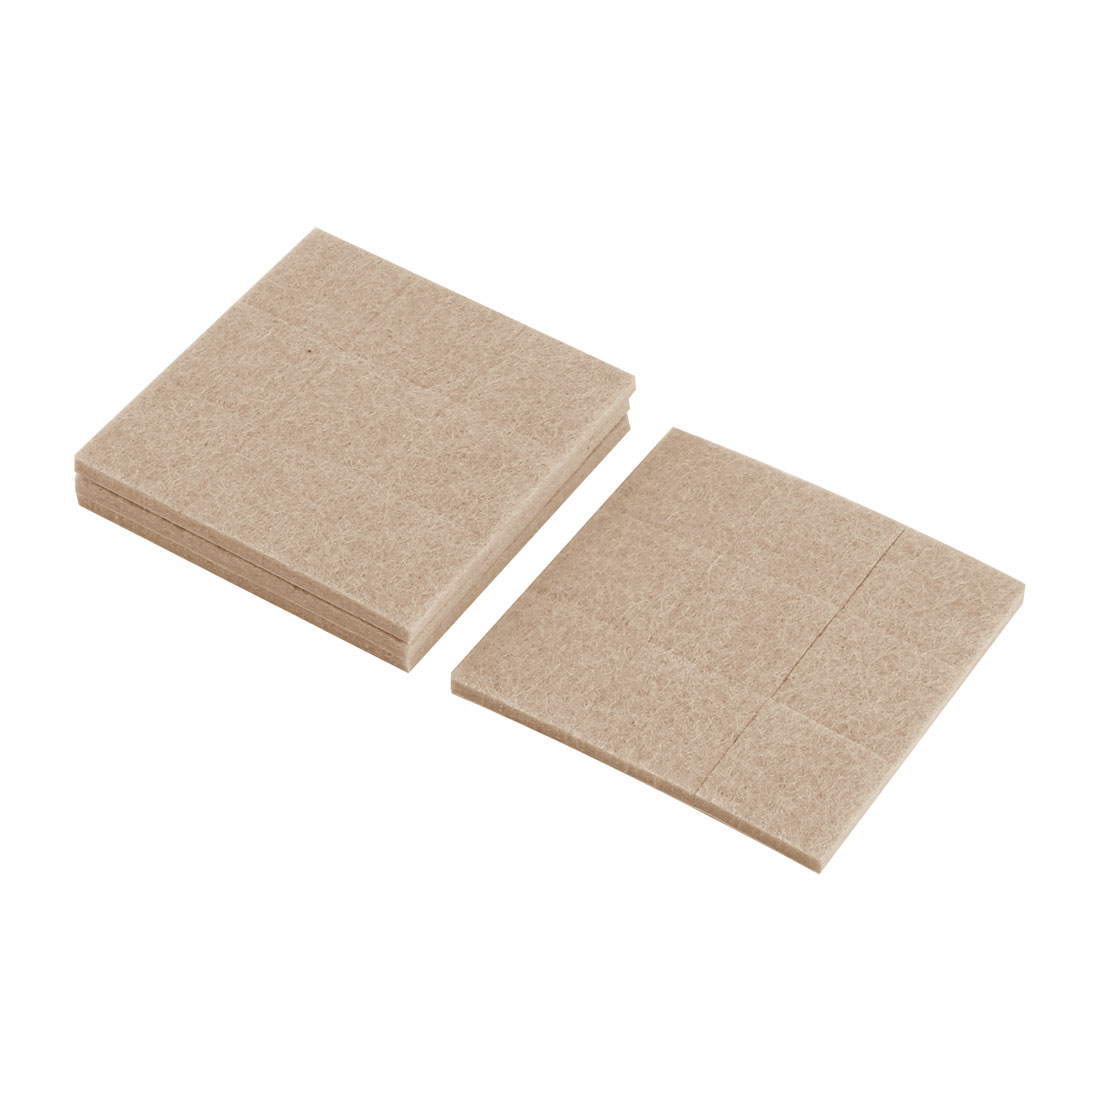 Home Square Table Chair Furniture Protector Felt Pads Cushion Mat 27 x 27mm 32pcs